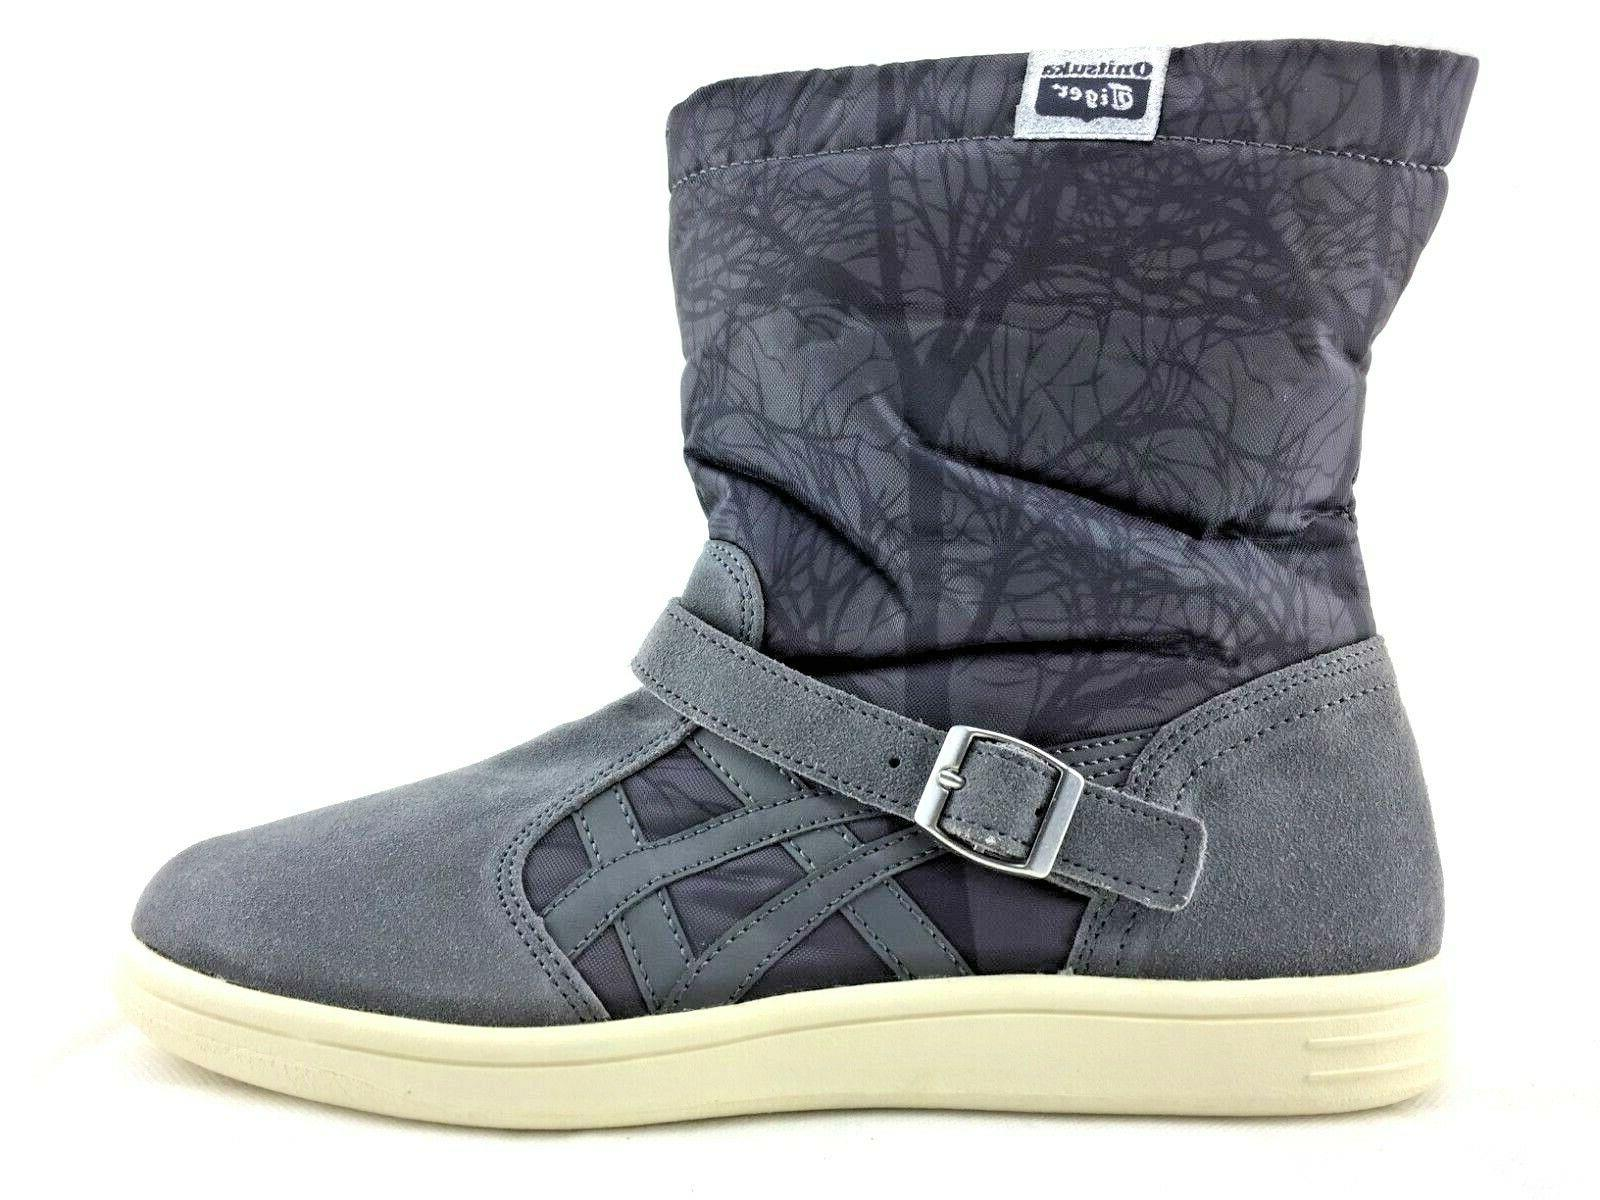 asics meriki winter boots ankle boots grey